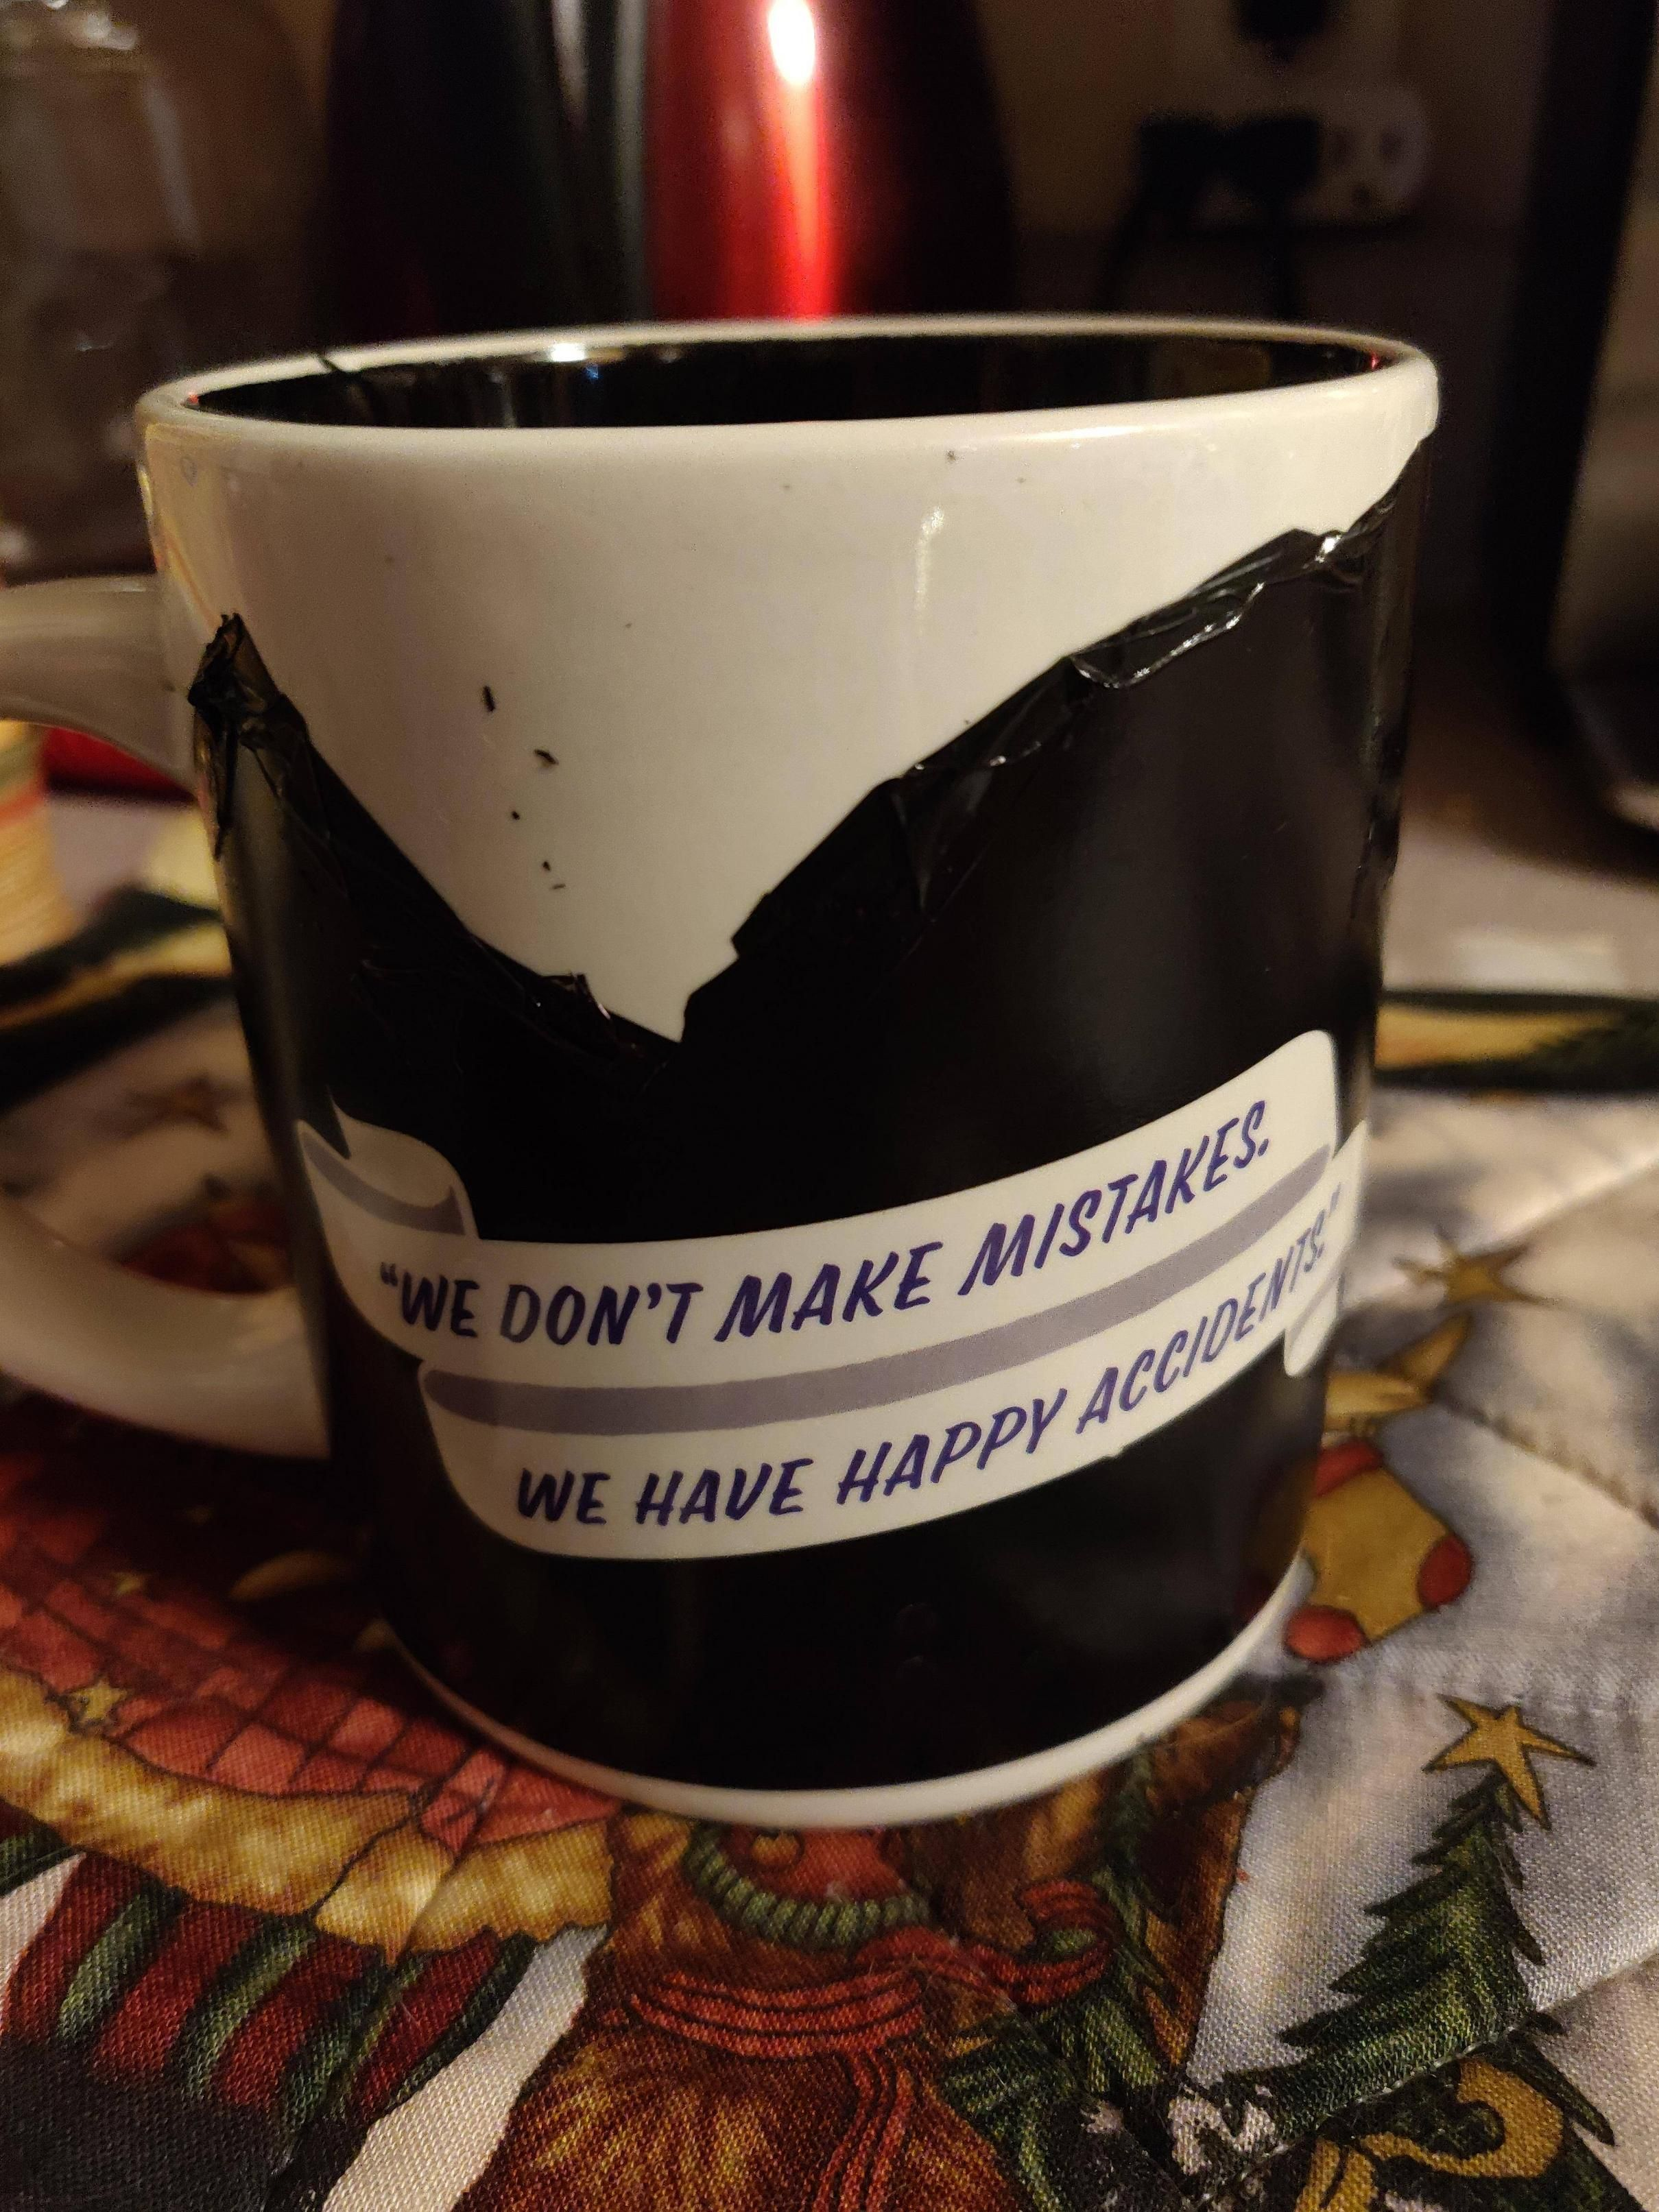 My wife accidentally ran my color-changing Bob Ross coffee mug through our new dishwasher. I told her I wasn't even upset because...